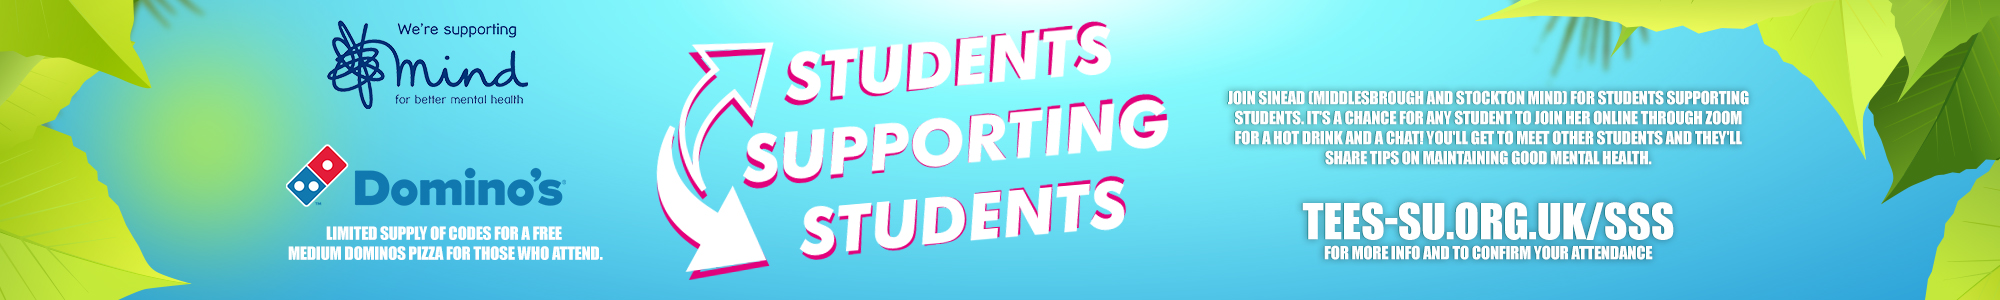 Students supporting students web